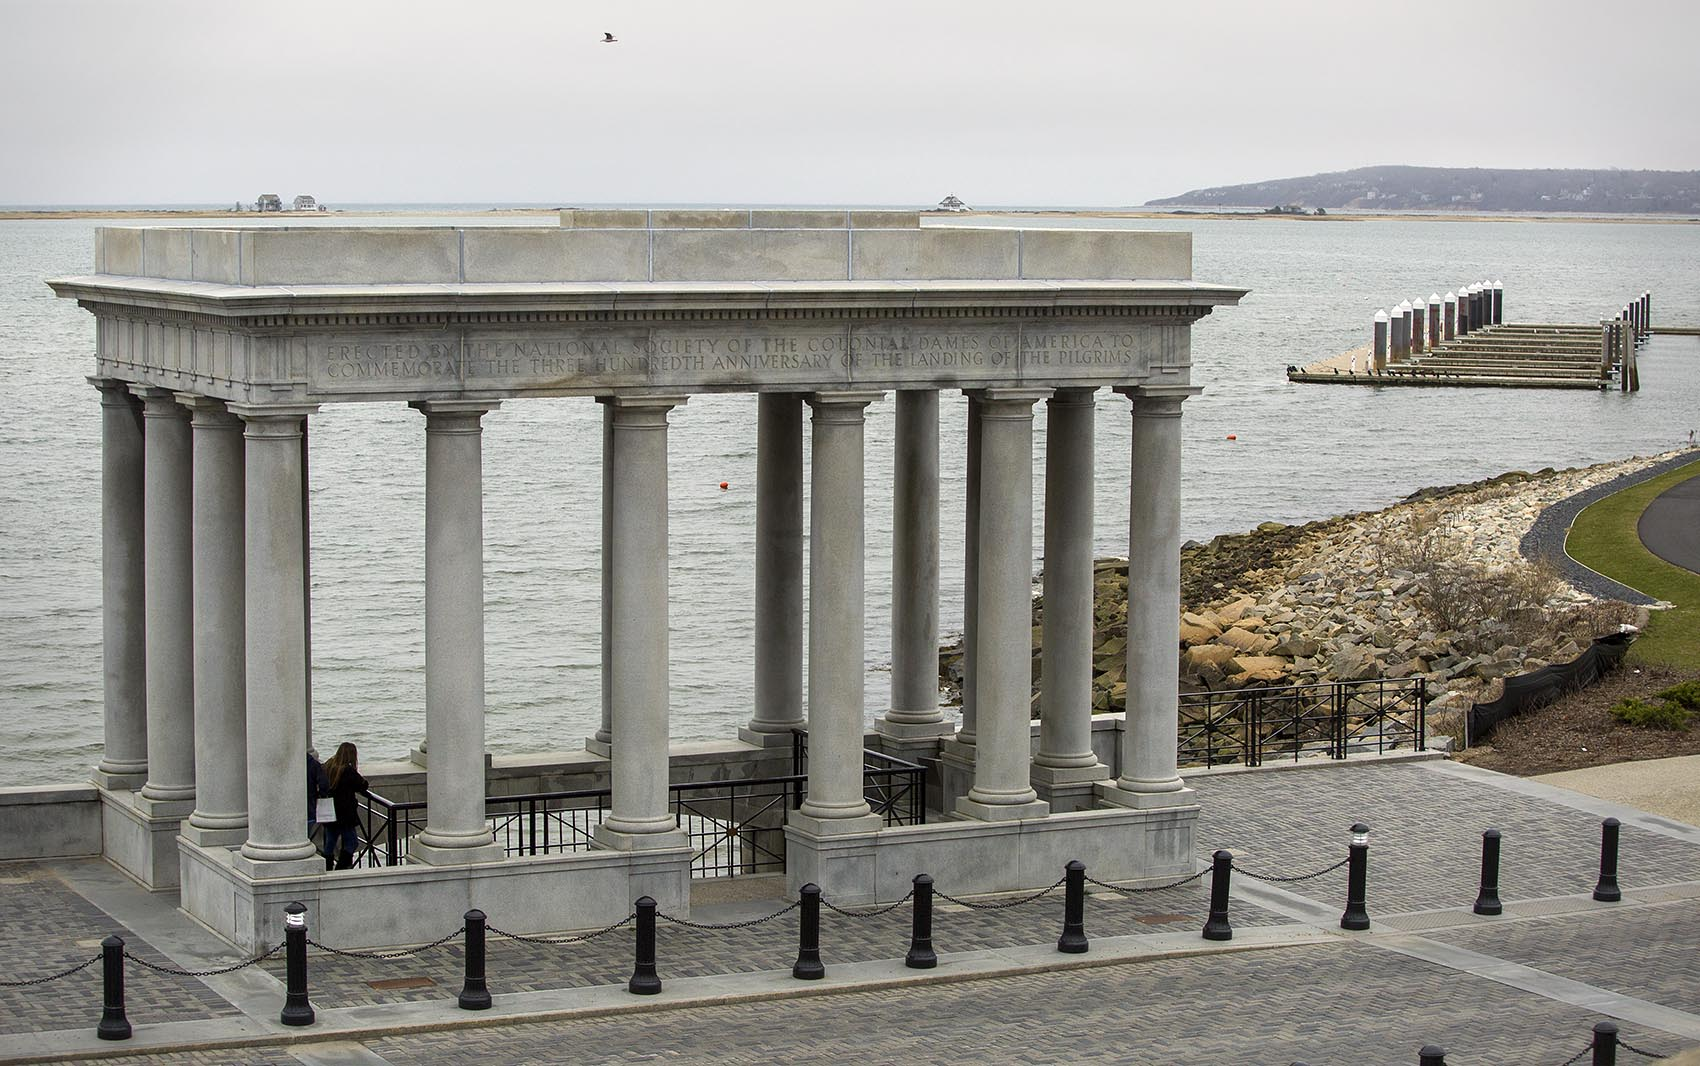 The Plymouth Rock portico looks out across the Plymouth Bay to Rocky Point, the location of Pilgrim Nuclear Power Station. (Robin Lubbock/WBUR)